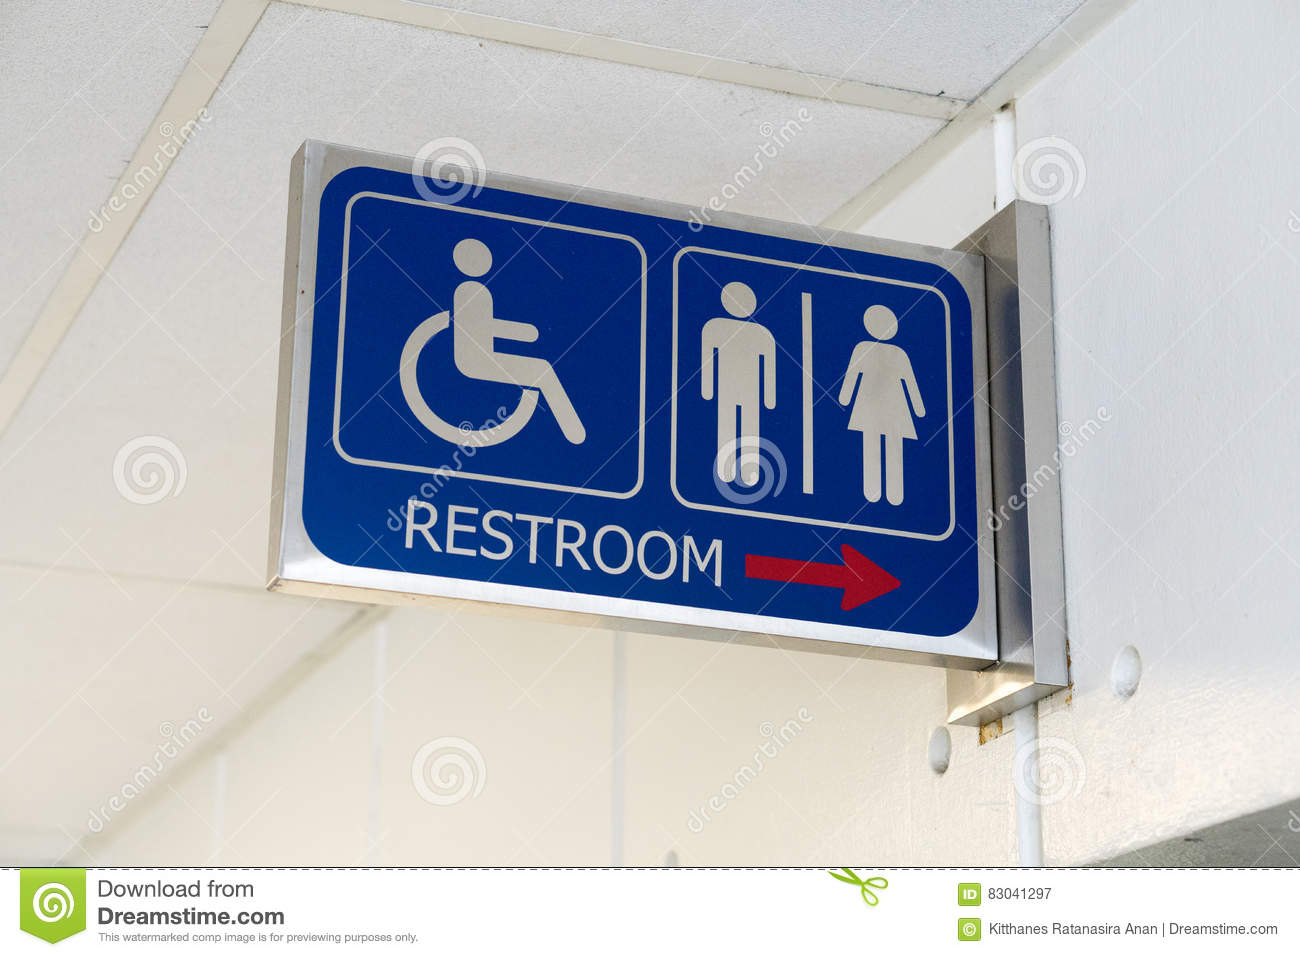 Sign bathrooms for men, women and the disabled